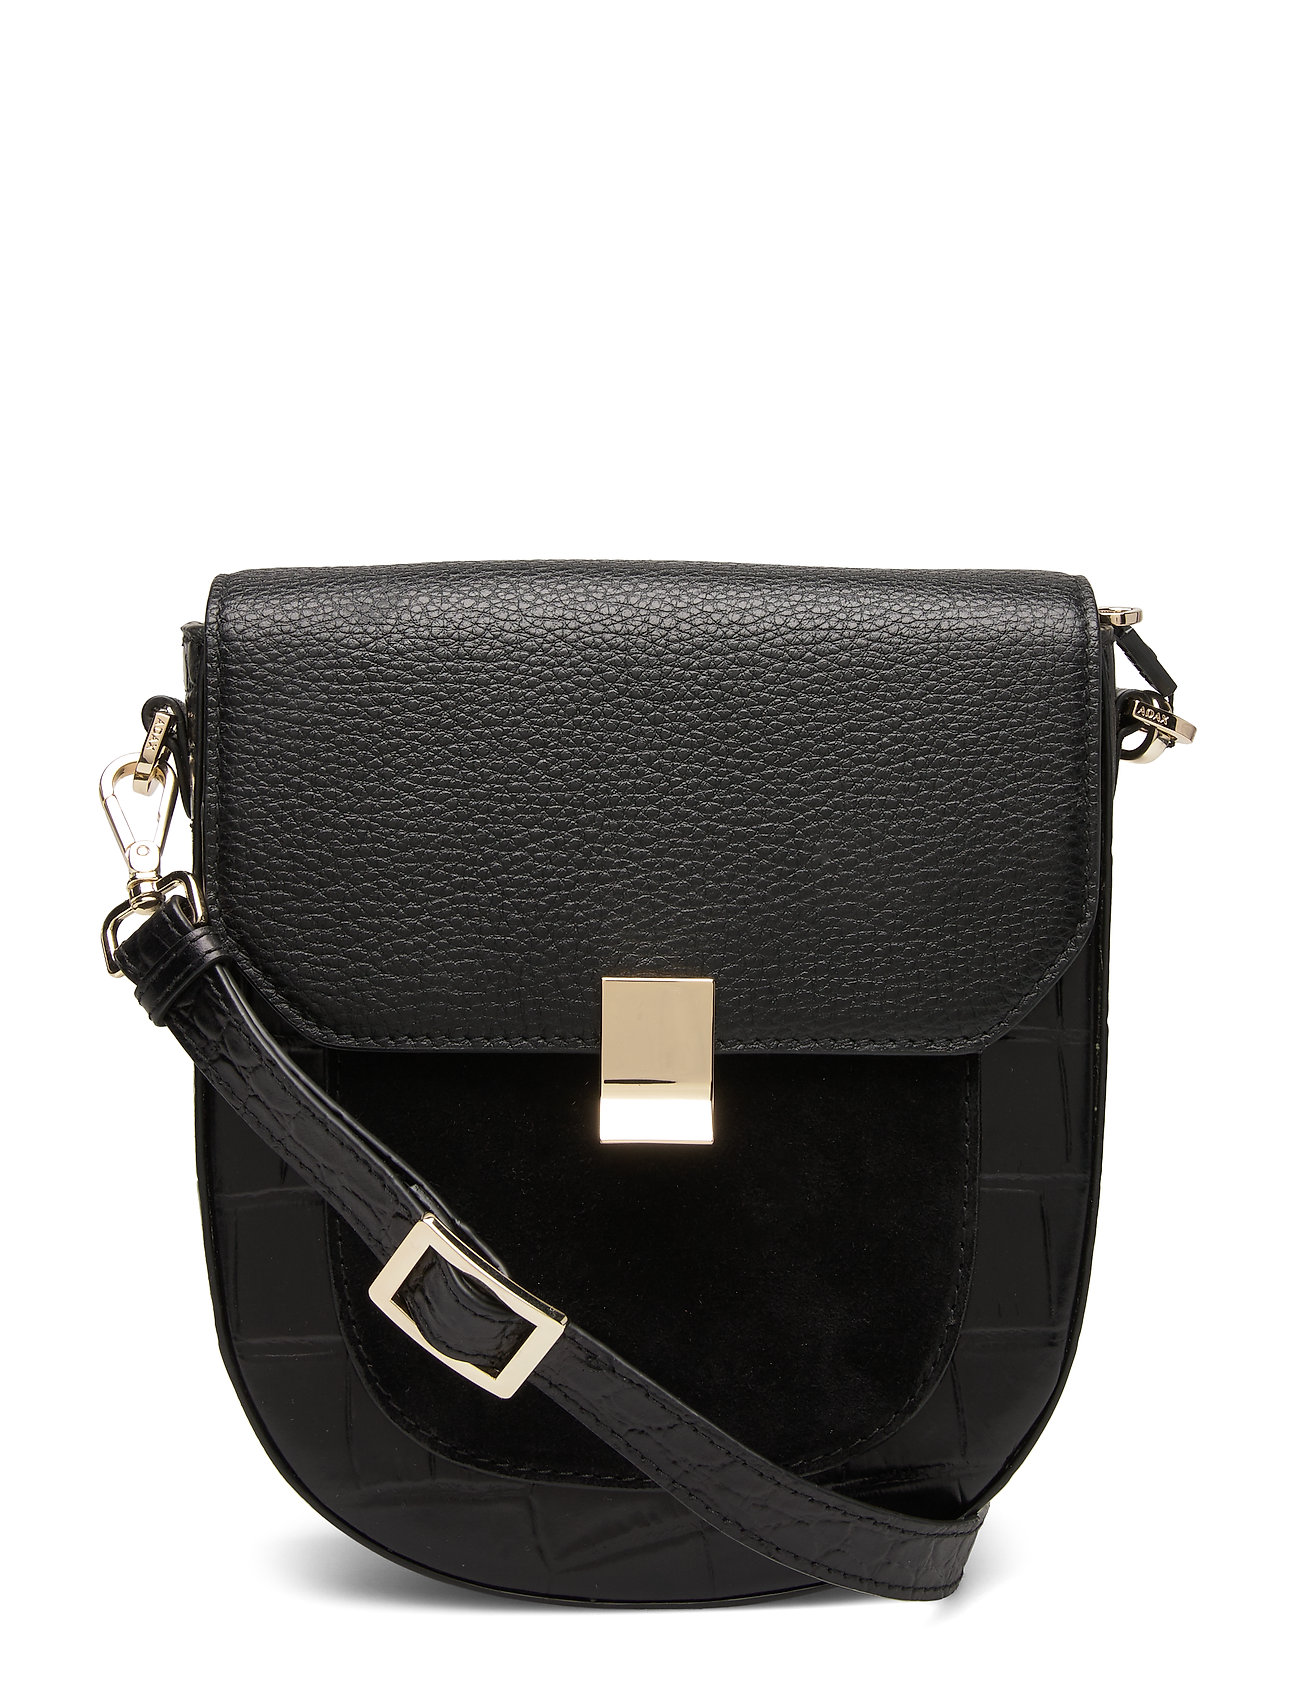 Adax Berlin shoulder bag Selma - BLACK